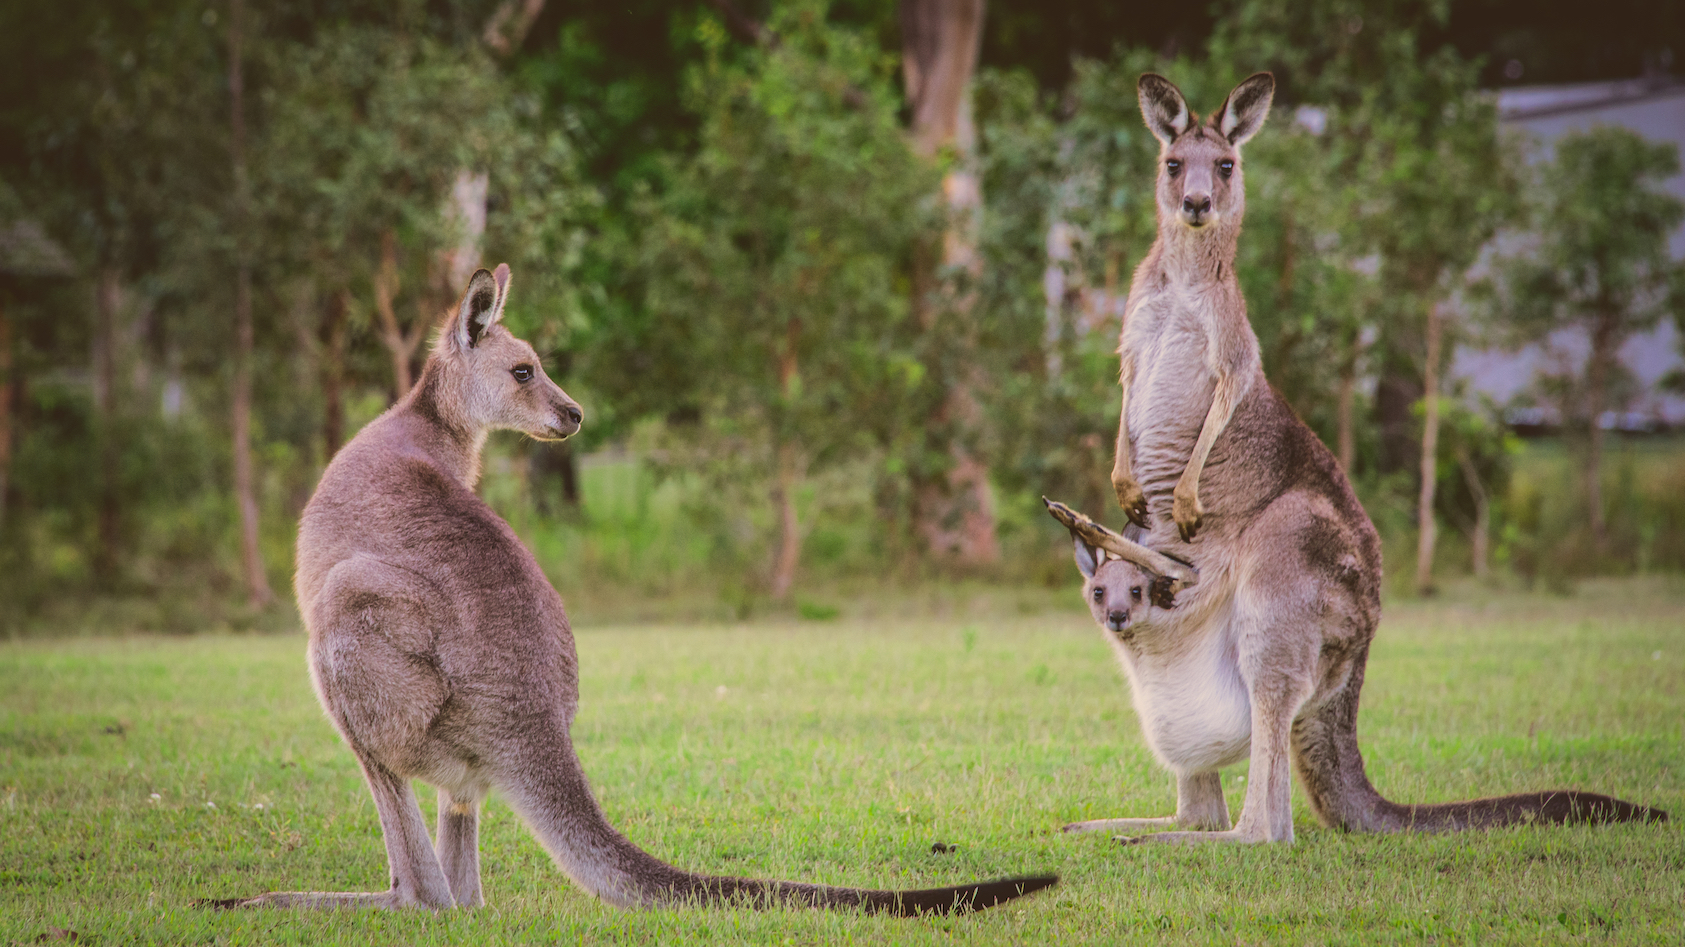 Kangaroos who live at home for longer makes them stronger and heavier and improves their long-term survival odds.